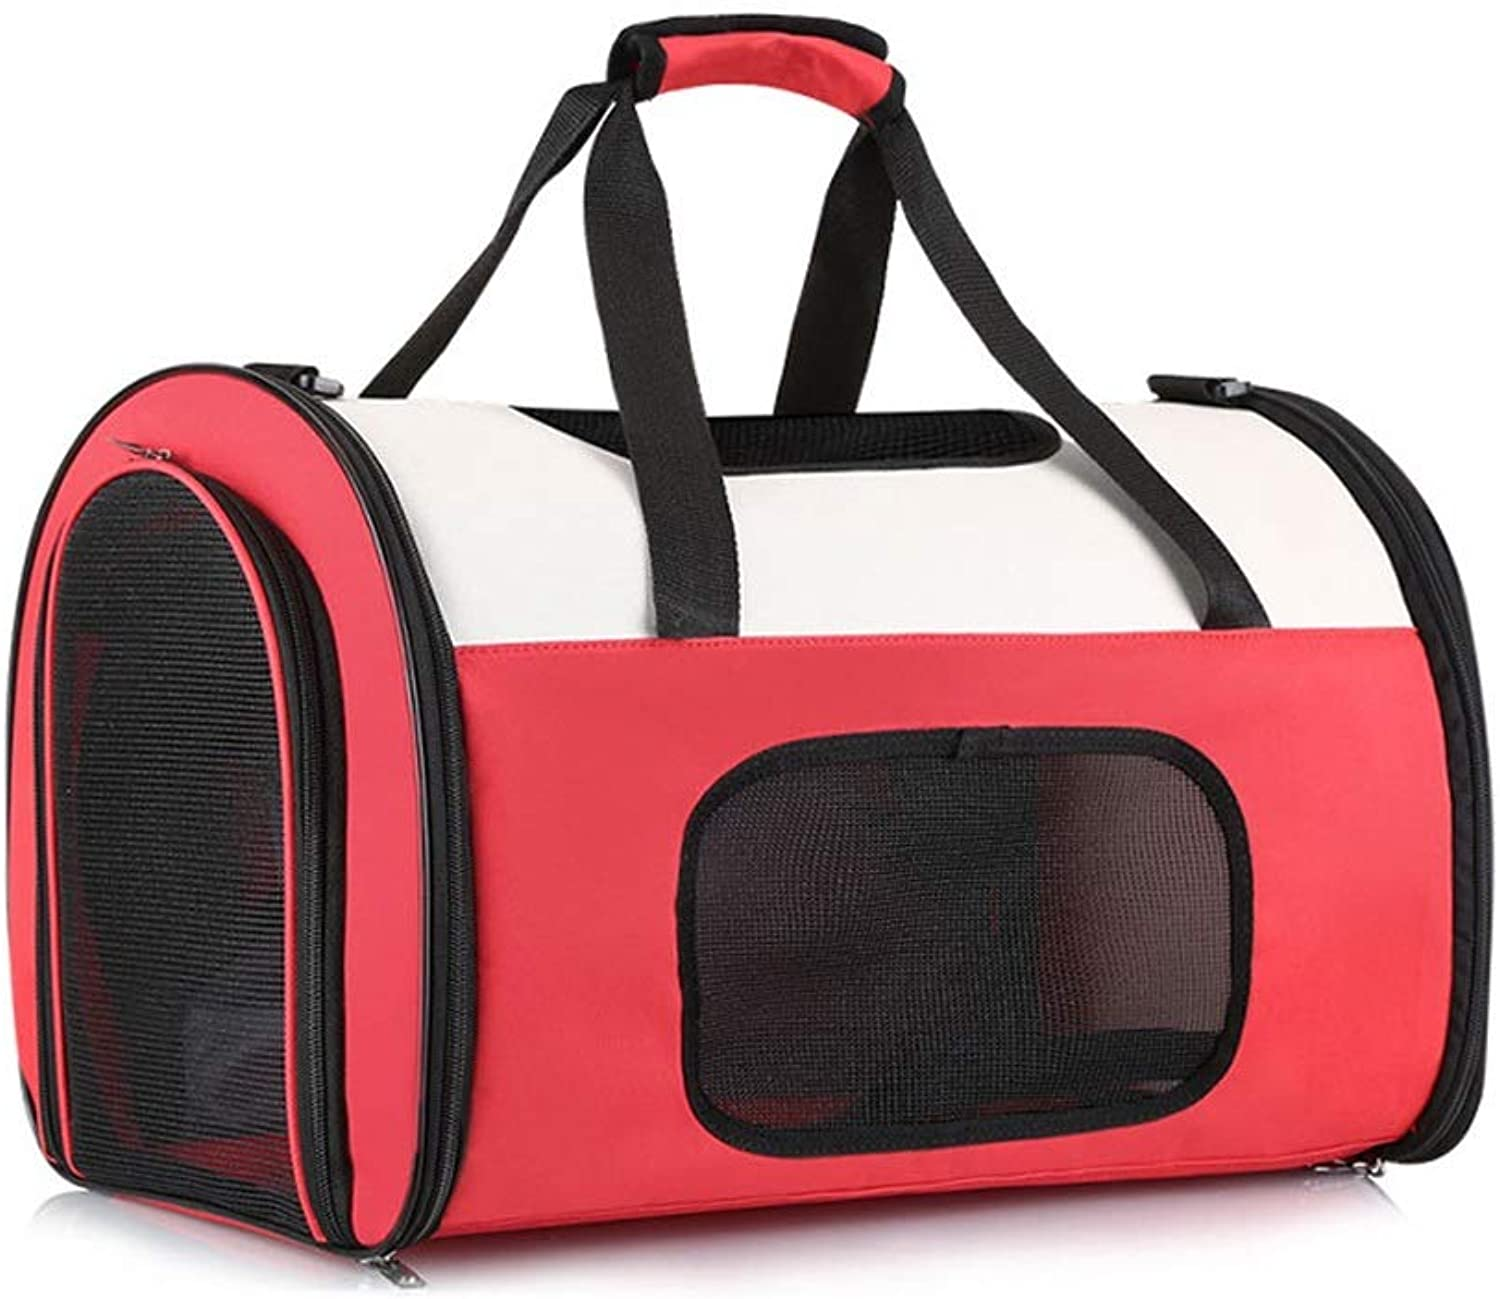 FELICIPP Pet Outer Bag Breathable Dog Outing Carrying Case Large Capacity Pet Tote Foldable Cat Bag (color, Size   S)